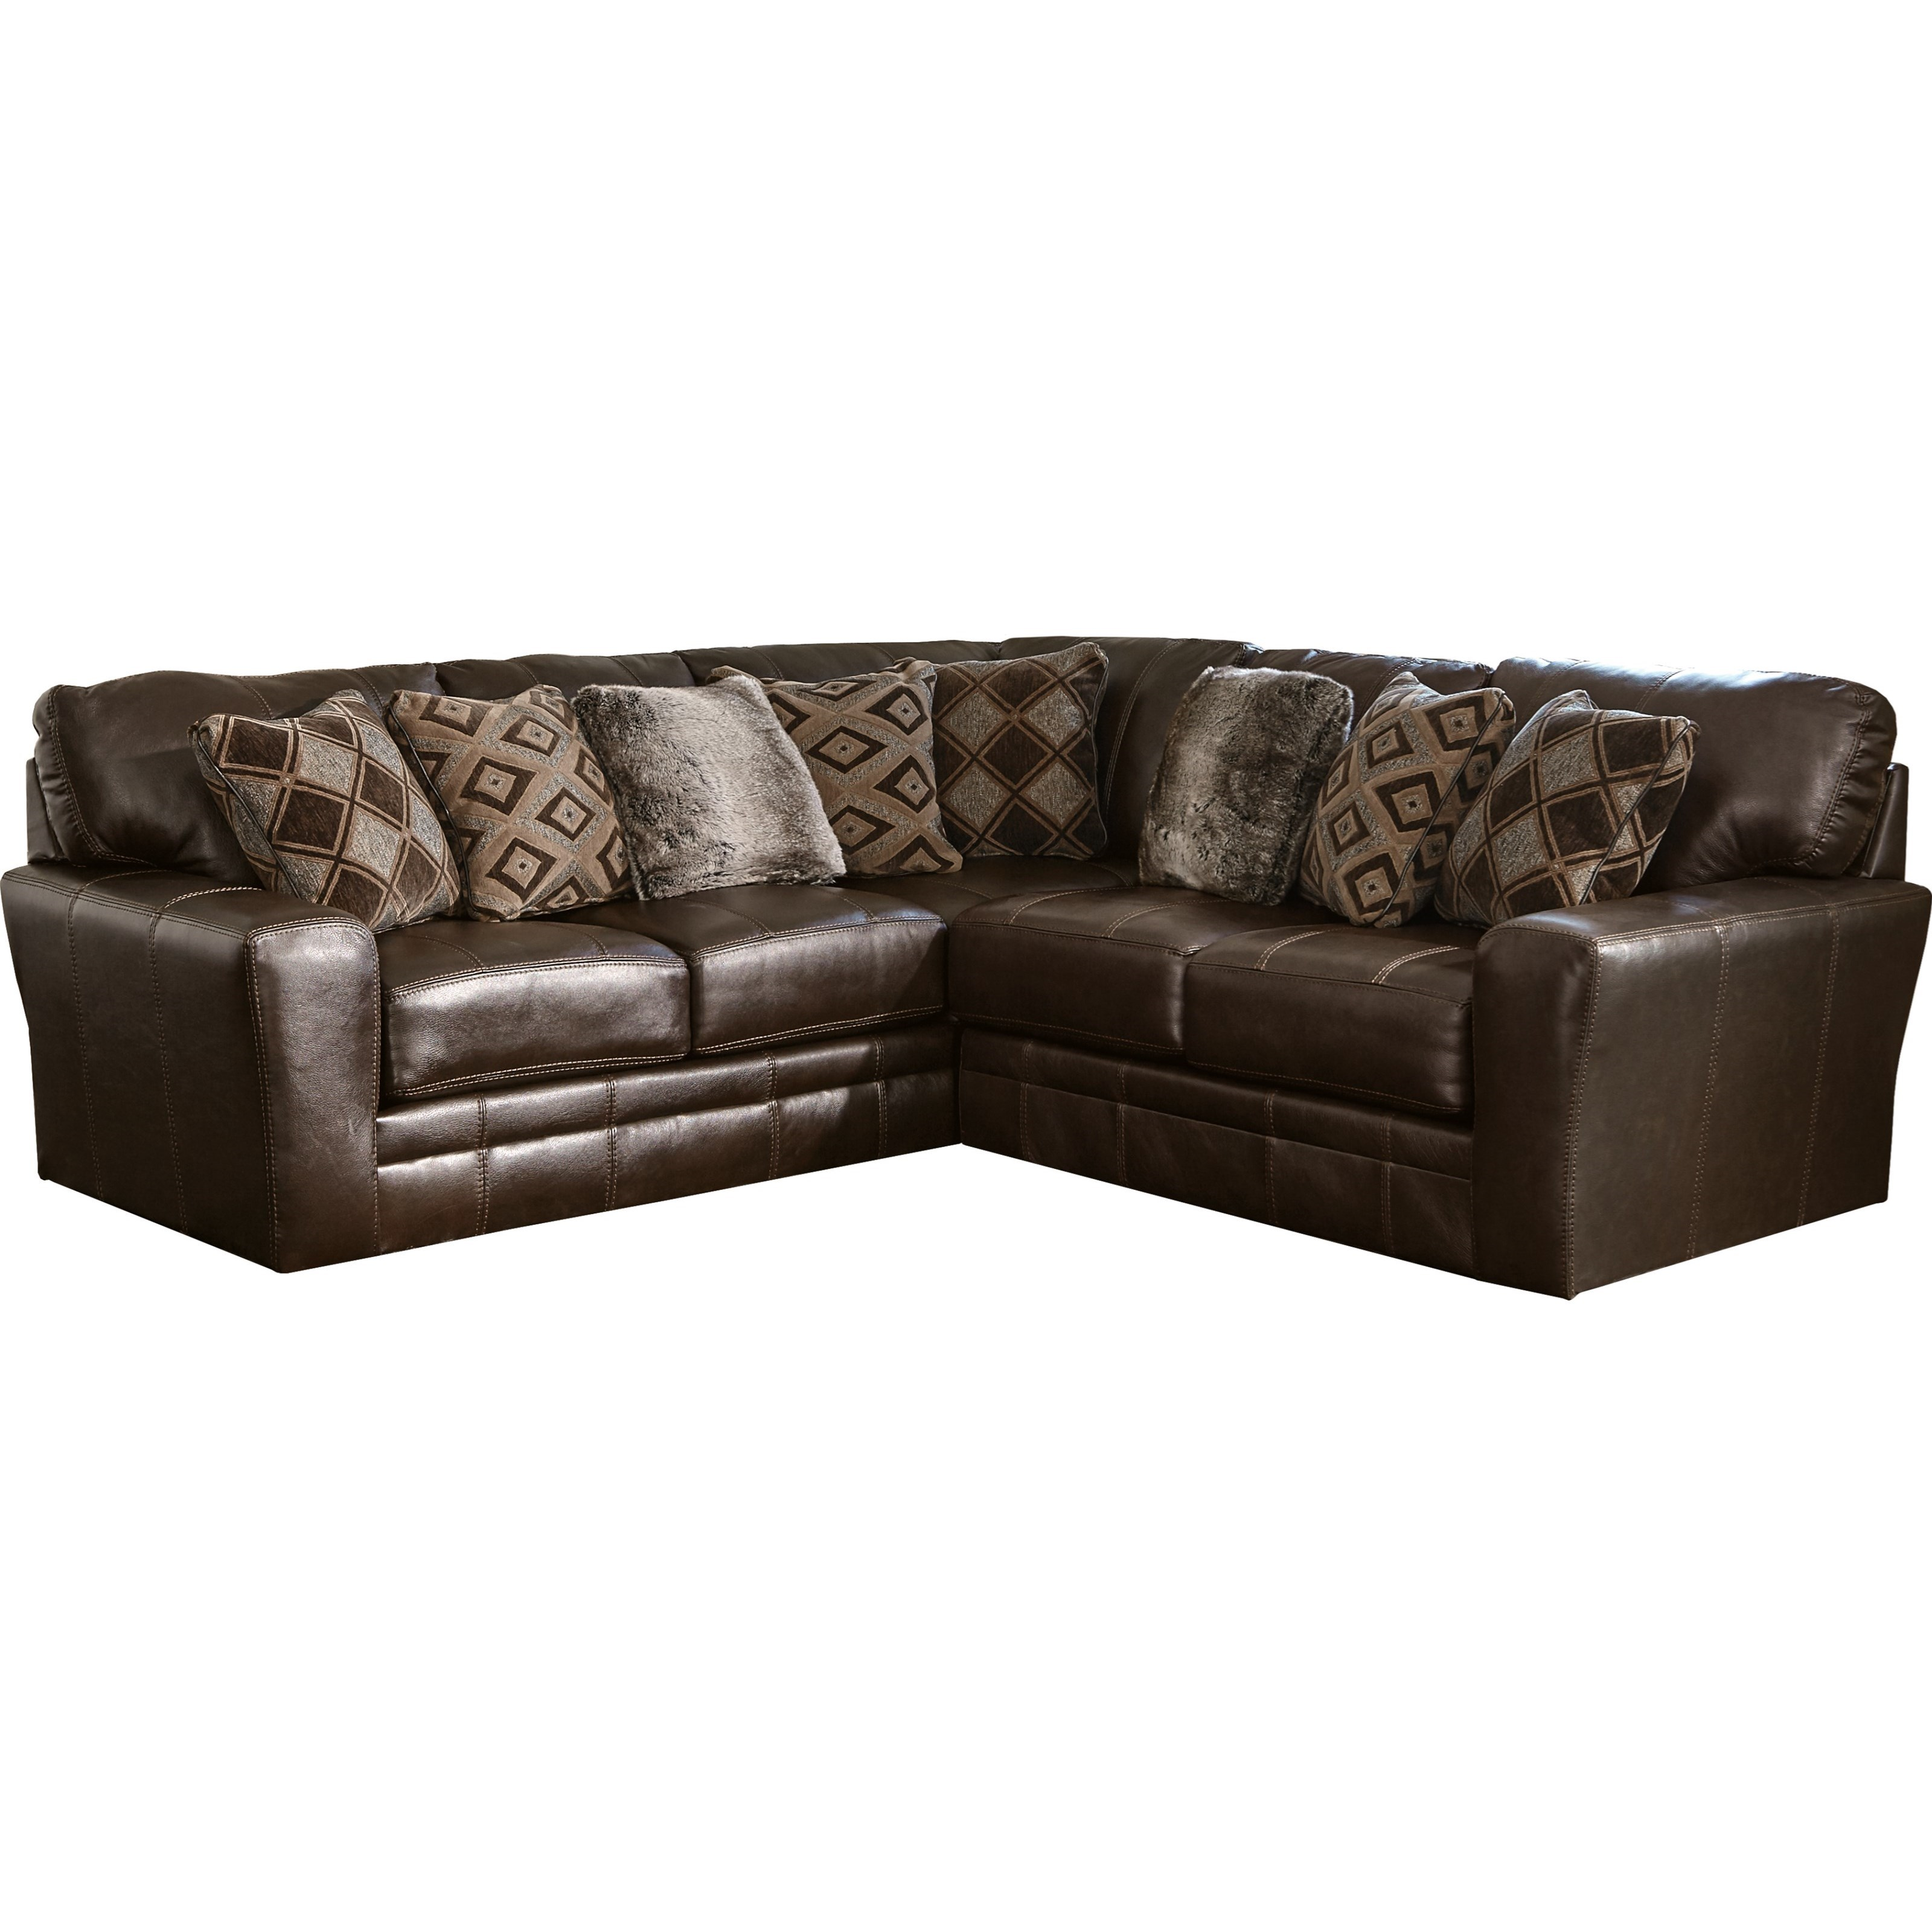 Denali 2 Piece Sectional by Jackson Furniture at Northeast Factory Direct